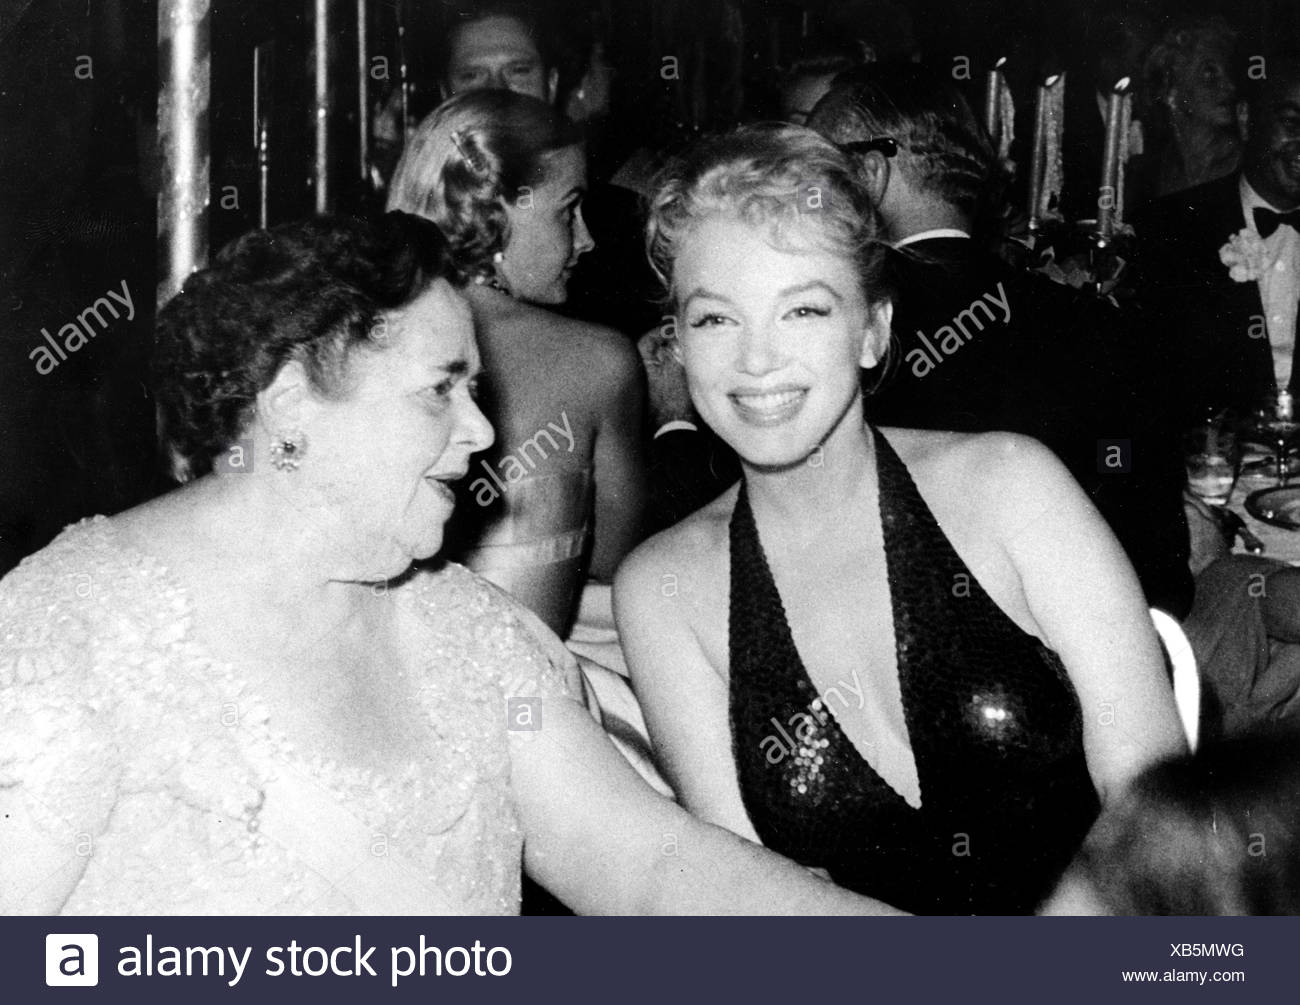 Maxwell, Elsa, 25.4.1883 - 1.11.1963, American publicist, half length, with Marilyn Monroe, at reception, New York, 15.4.1957, s - Stock Image